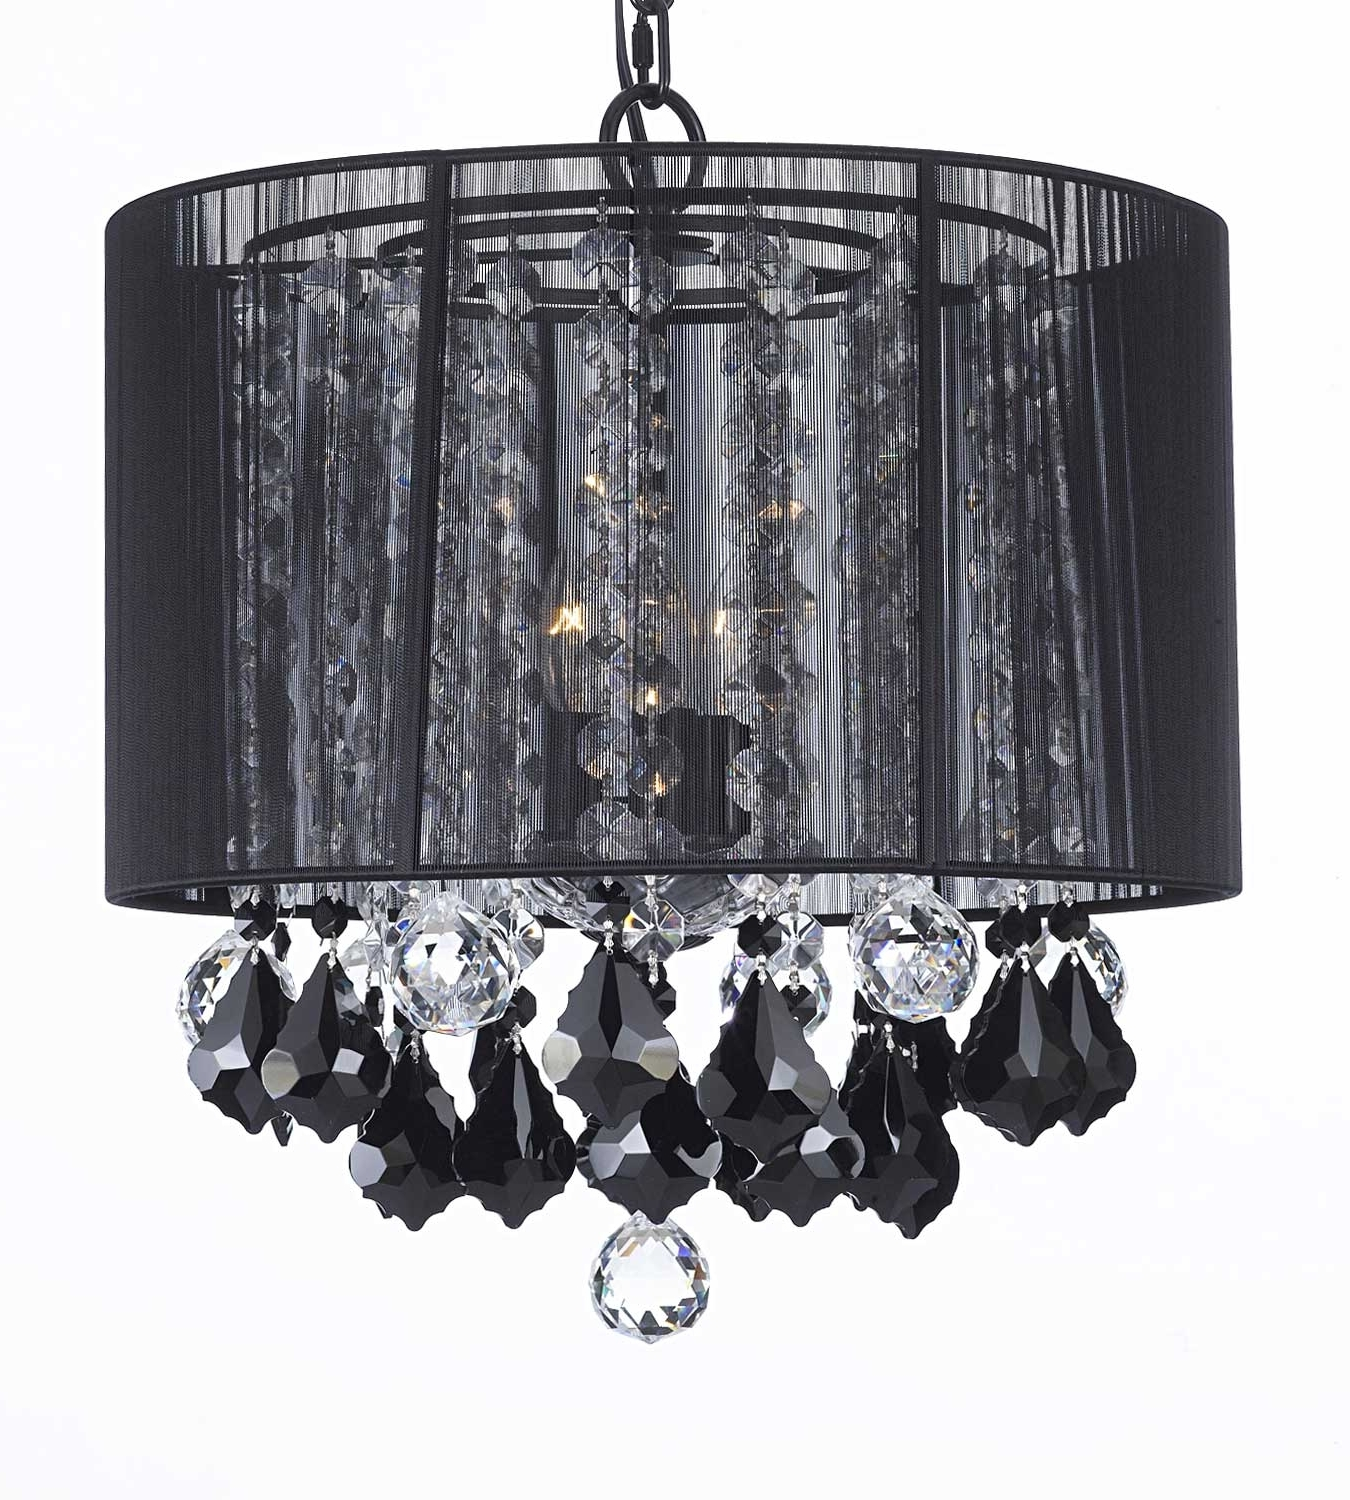 G7 Black/604/3 Gallery Chandeliers With Shades Crystal Chandelier Regarding Best And Newest Chandeliers With Black Shades (Gallery 5 of 15)